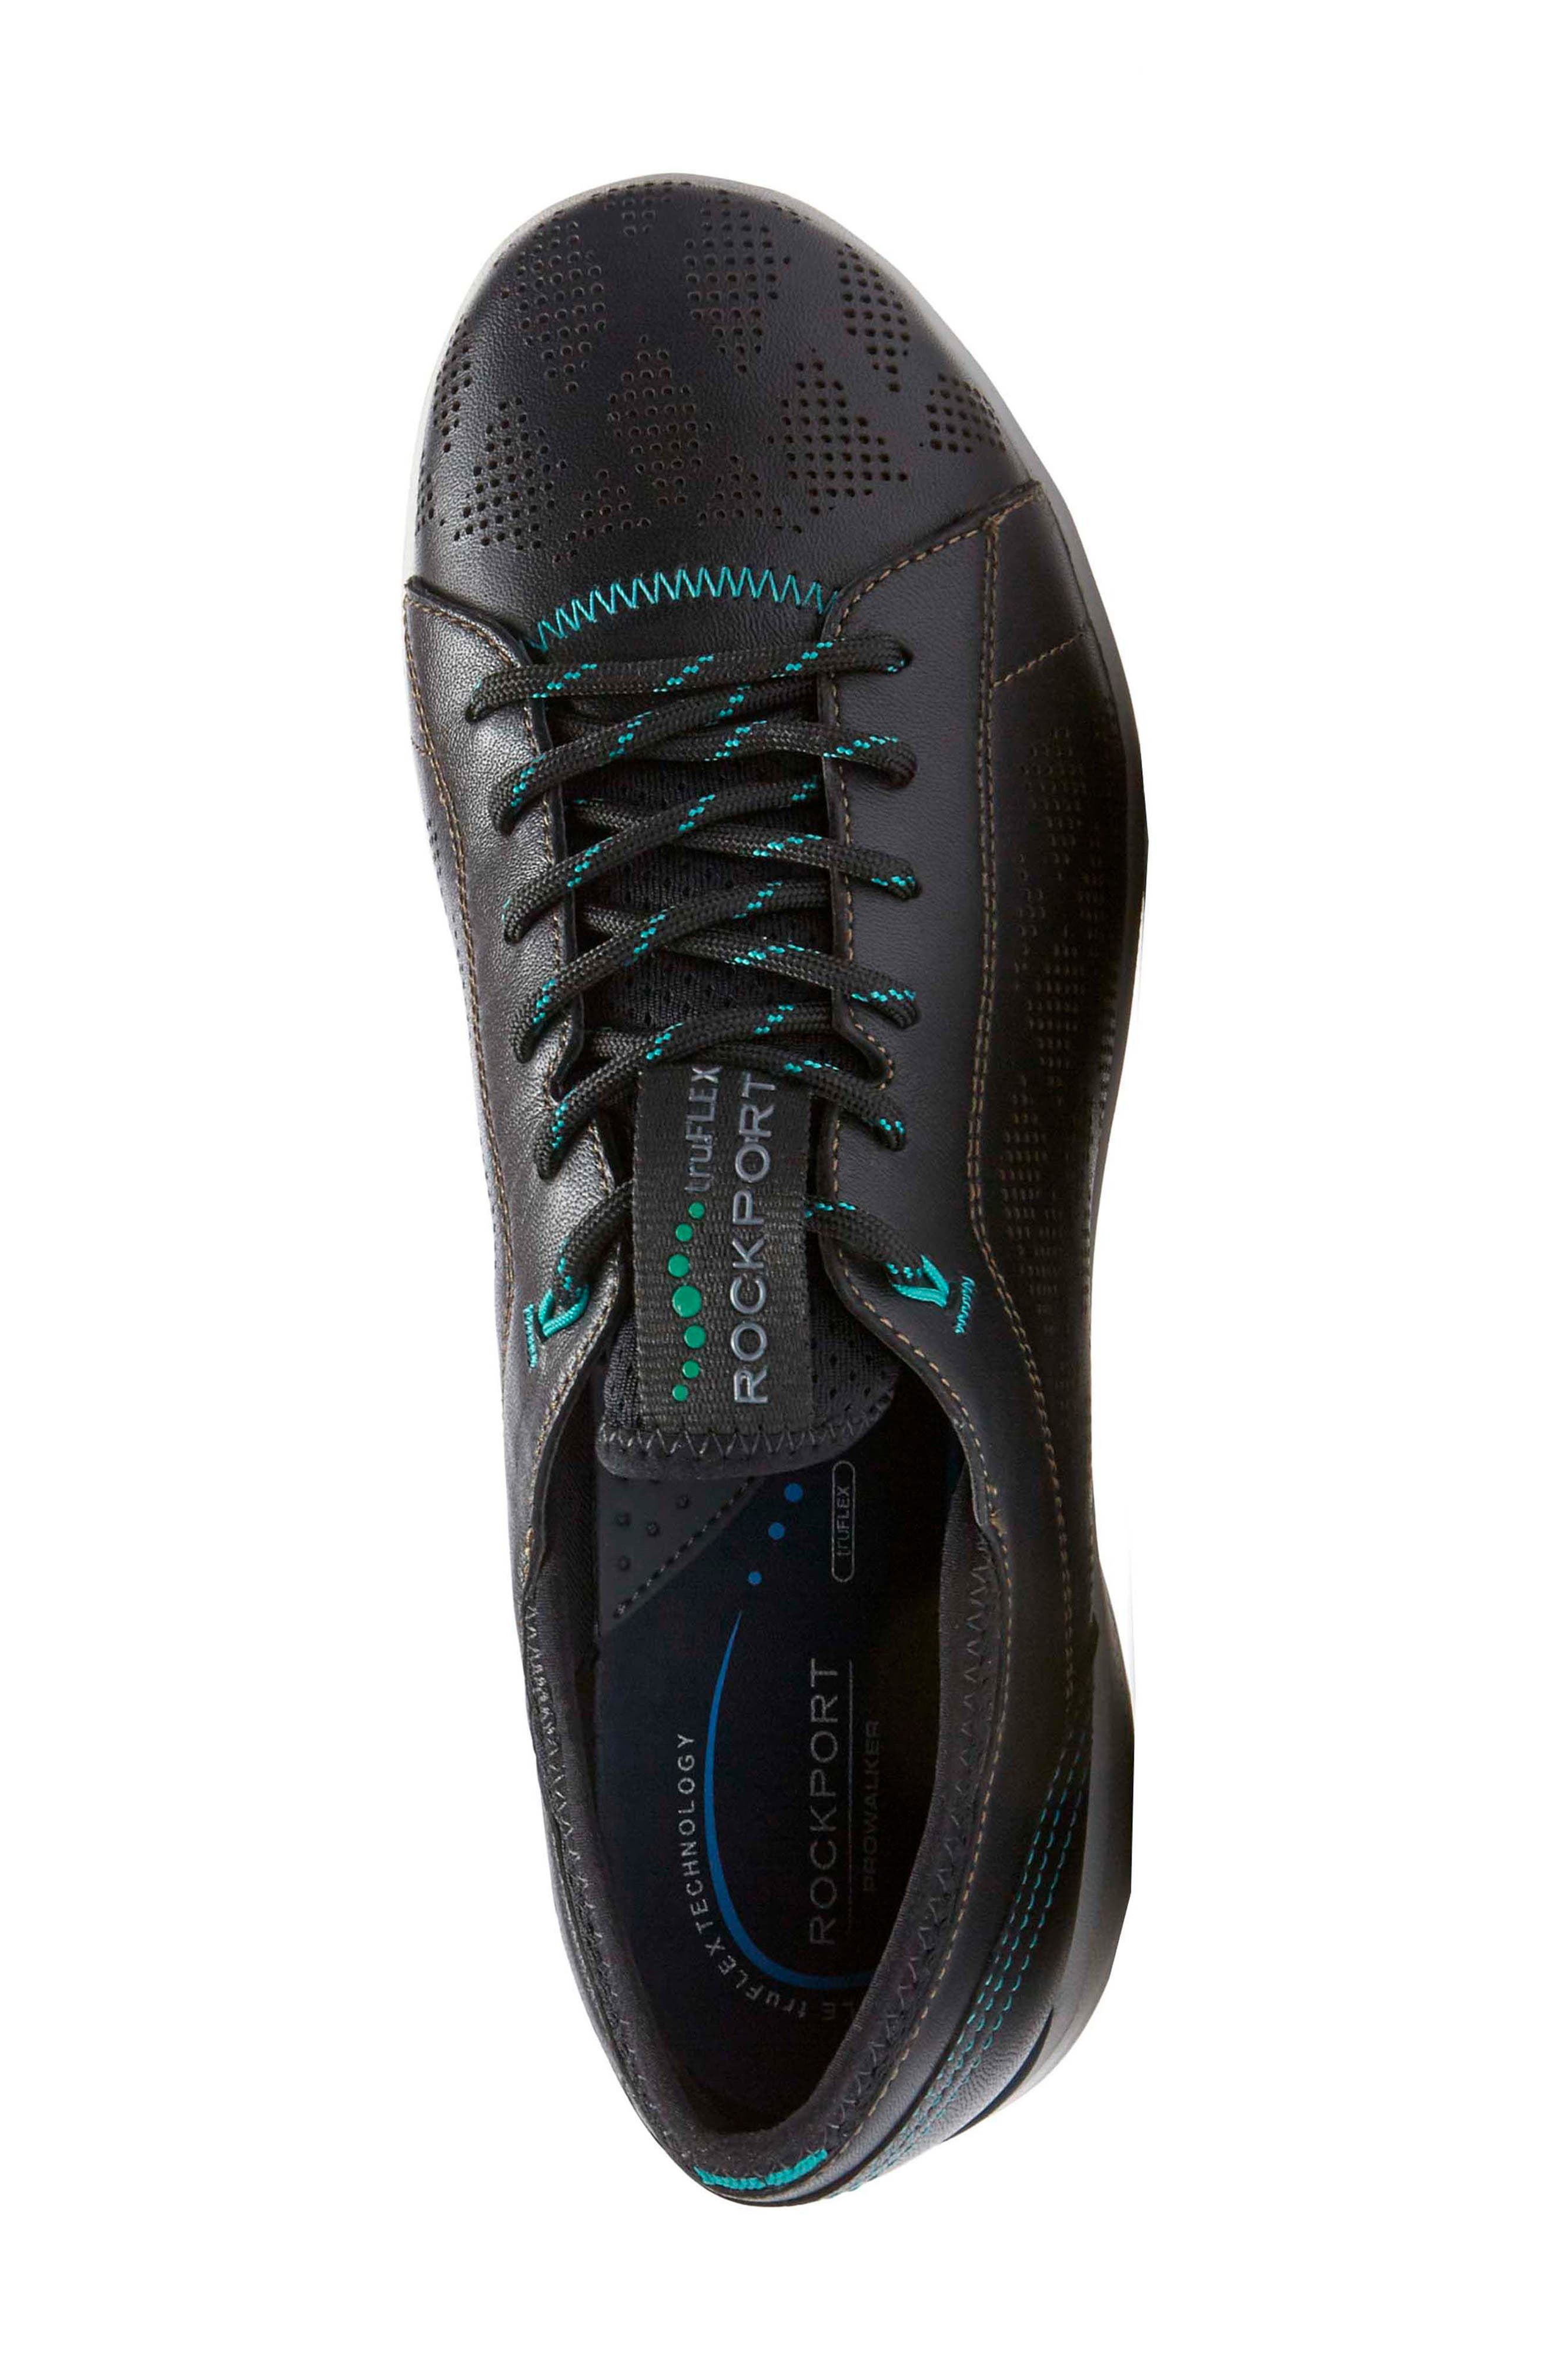 truFLEX Perforated Sneaker,                             Alternate thumbnail 4, color,                             BLACK LEATHER